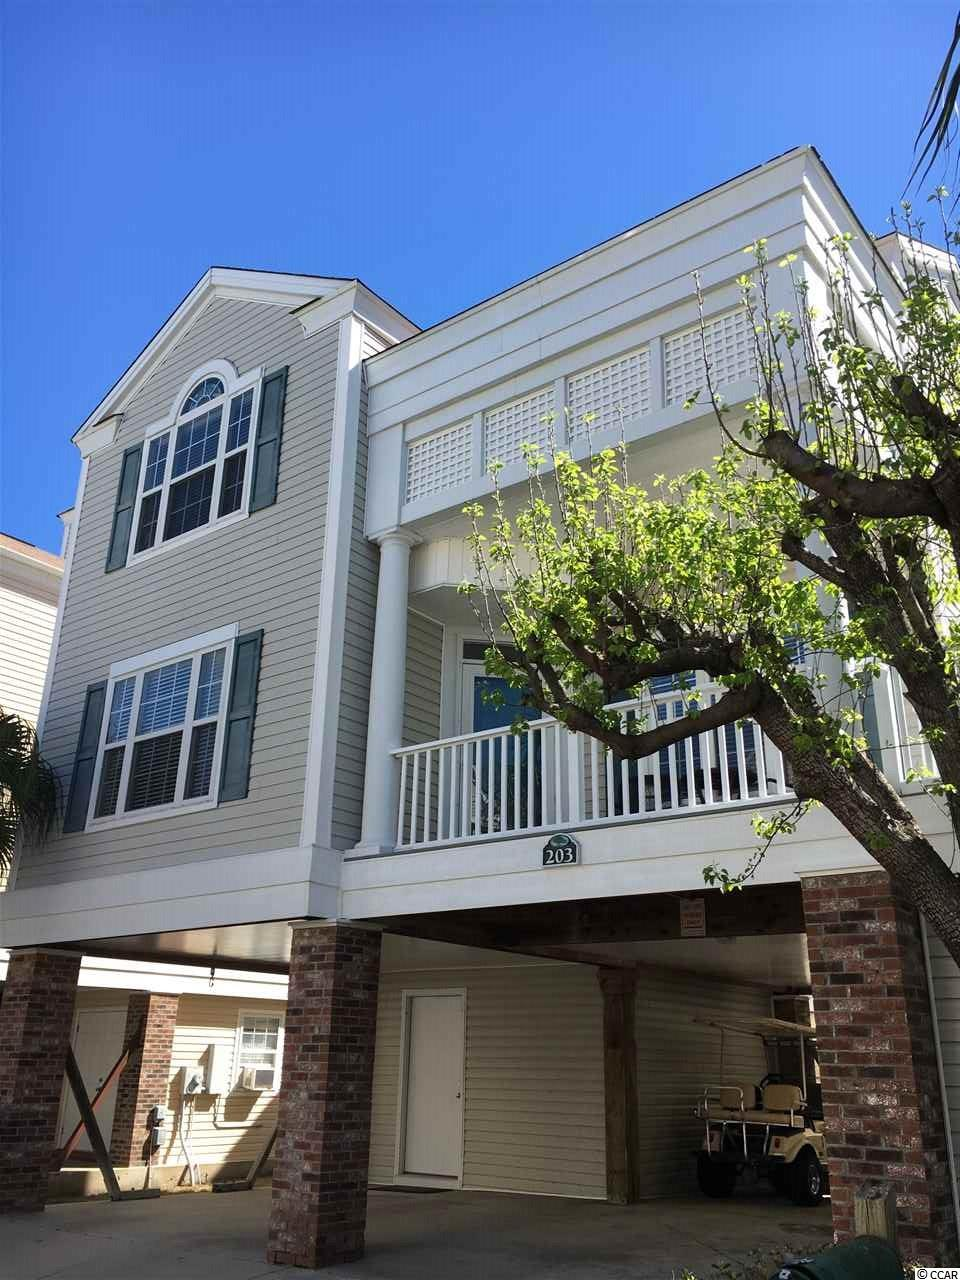 Single Family Home for Sale at 203 Millwood Drive 203 Millwood Drive Surfside Beach, South Carolina 29575 United States